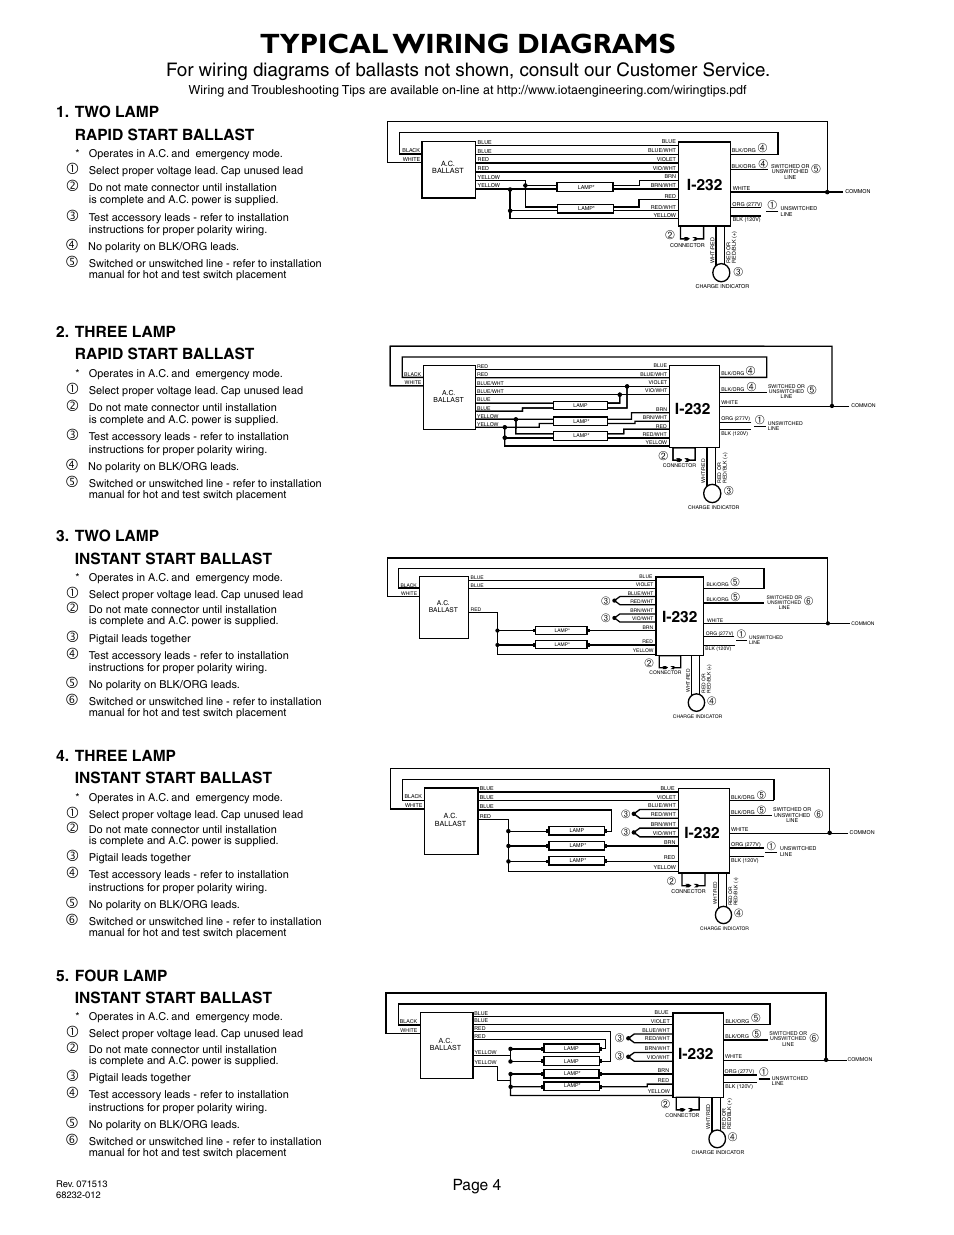 iota i 232 page4?resize=840%2C1087 iota emergency ballast wiring diagram periodic & diagrams science iota isl 540 wiring diagram at gsmportal.co